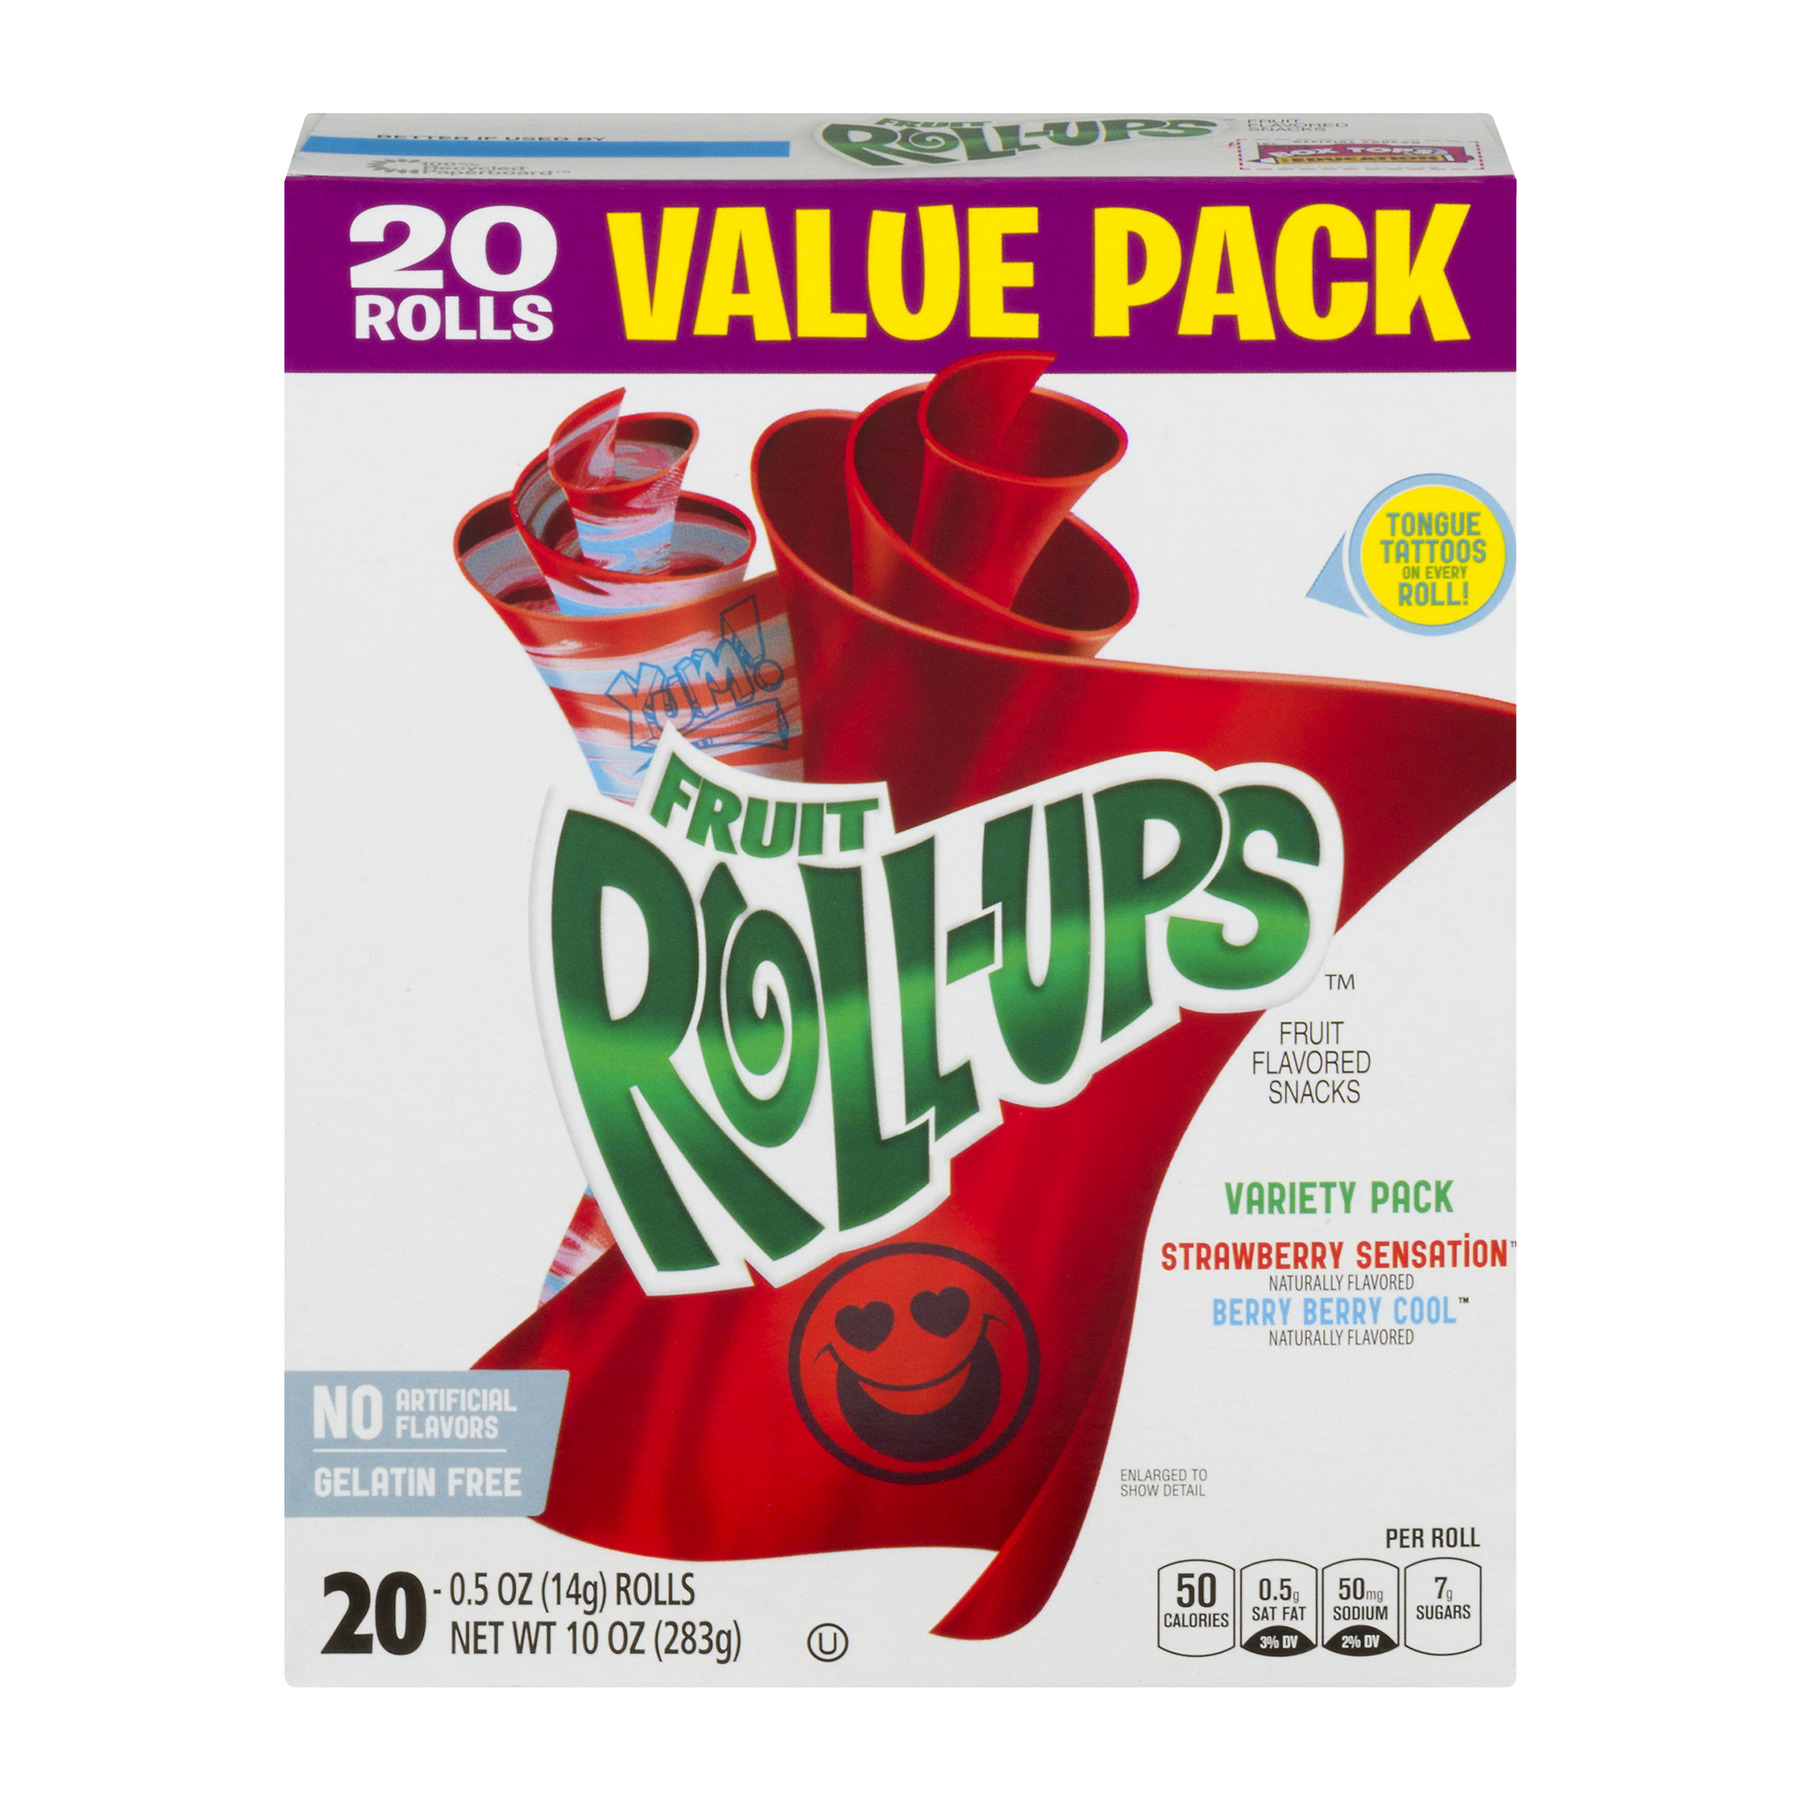 Betty Crocker® Fruit Roll-Ups Variety Pack of Strawberry Sensation and Berry Berry Cool Value Pack 20 - 0.5 oz Rolls